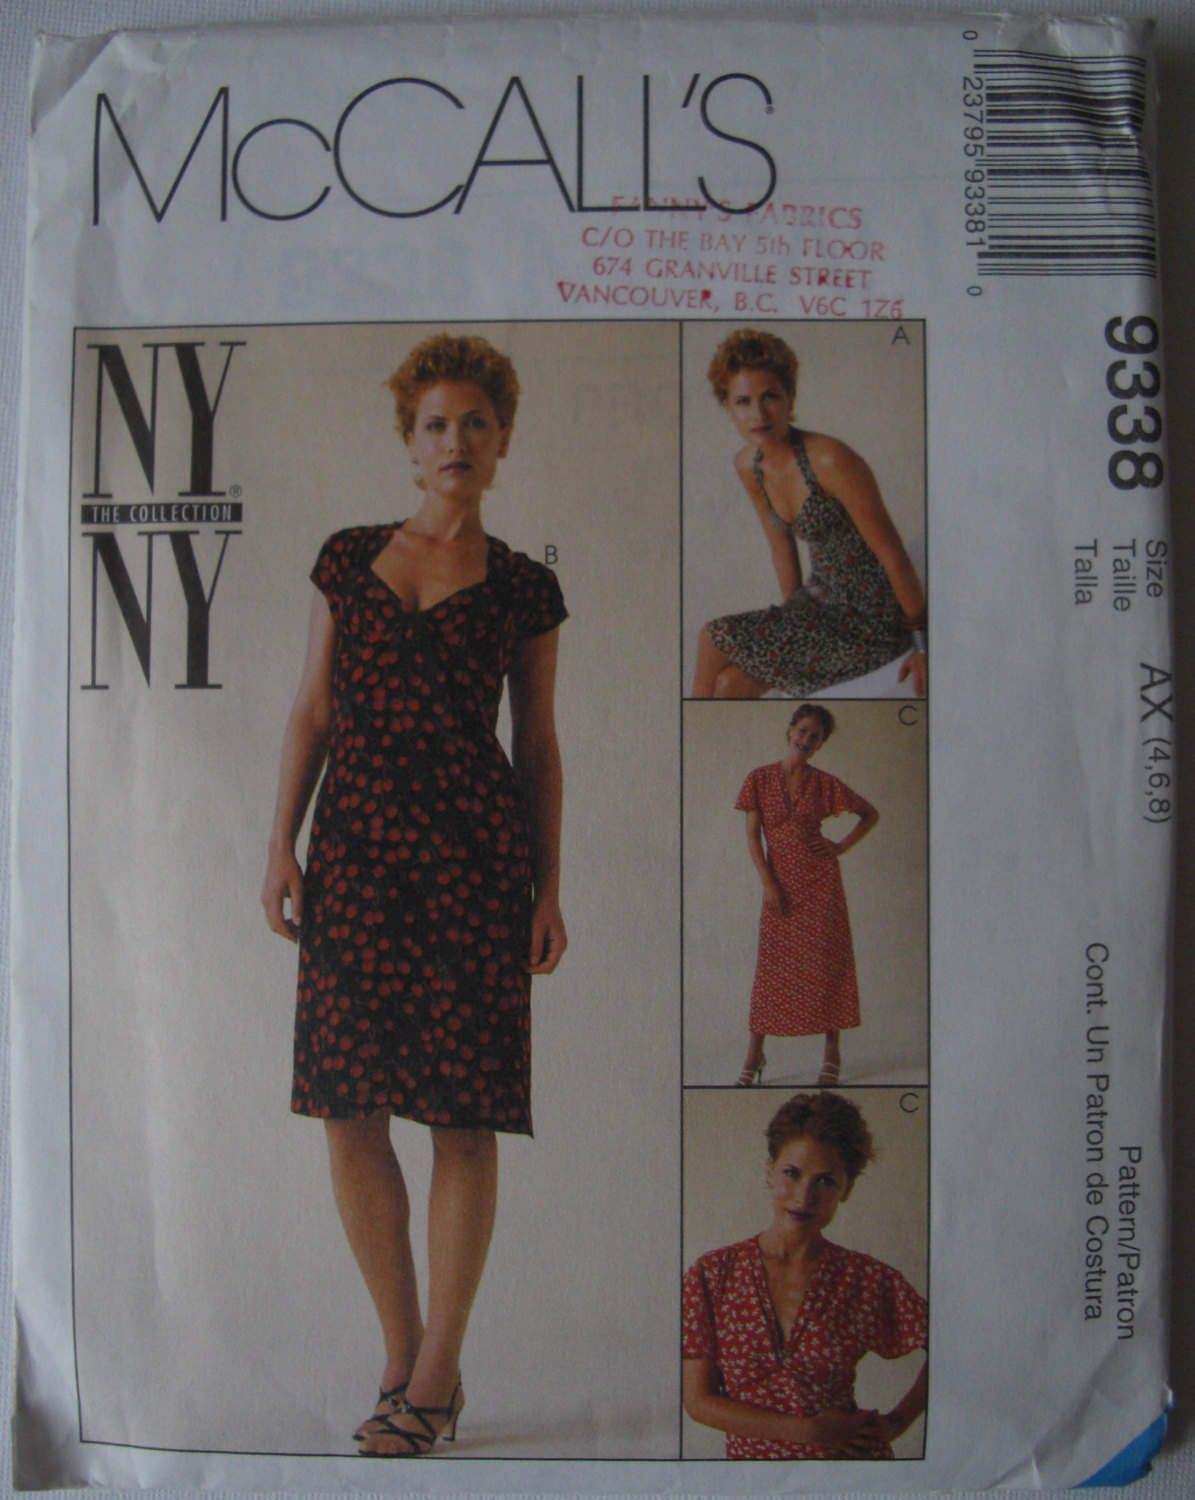 """McCalls Vintage NY NY Collection Sewing Pattern Halter Style Dress/ 20""""s Inspired Dress/Sweet Heart Neck line   Un-Cut by BettyBobbincase on Etsy"""